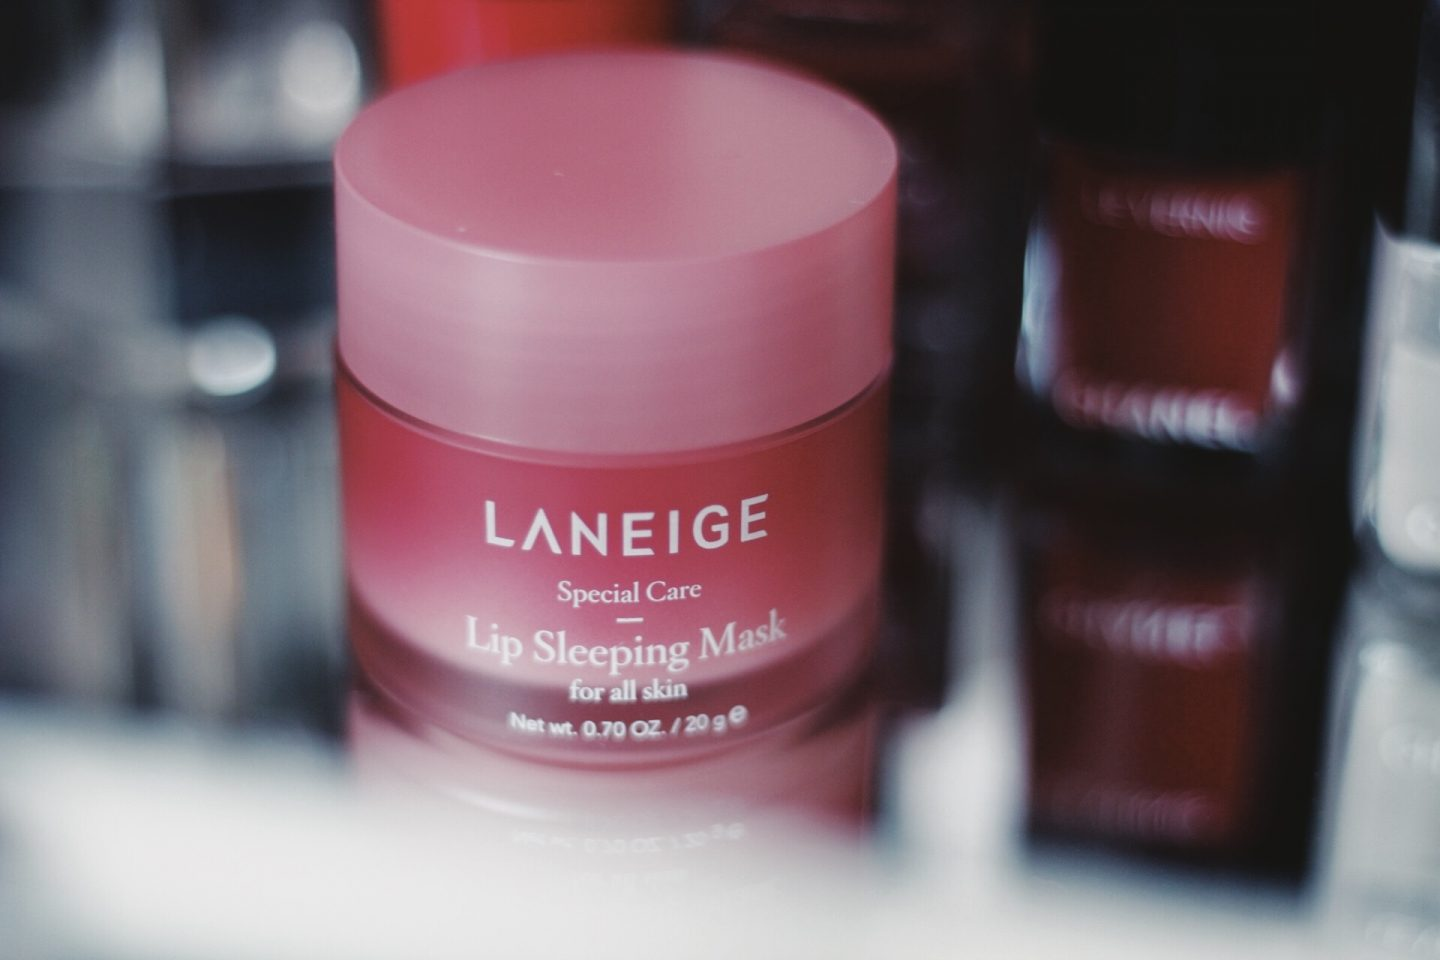 K Beauty Series Laneige Lip Sleeping Mask The Glow Goddess Sephoras And Ultas Of World Kept Stocking Loads Sheet Masks Other Skin Care Items In Their Aisles After A While